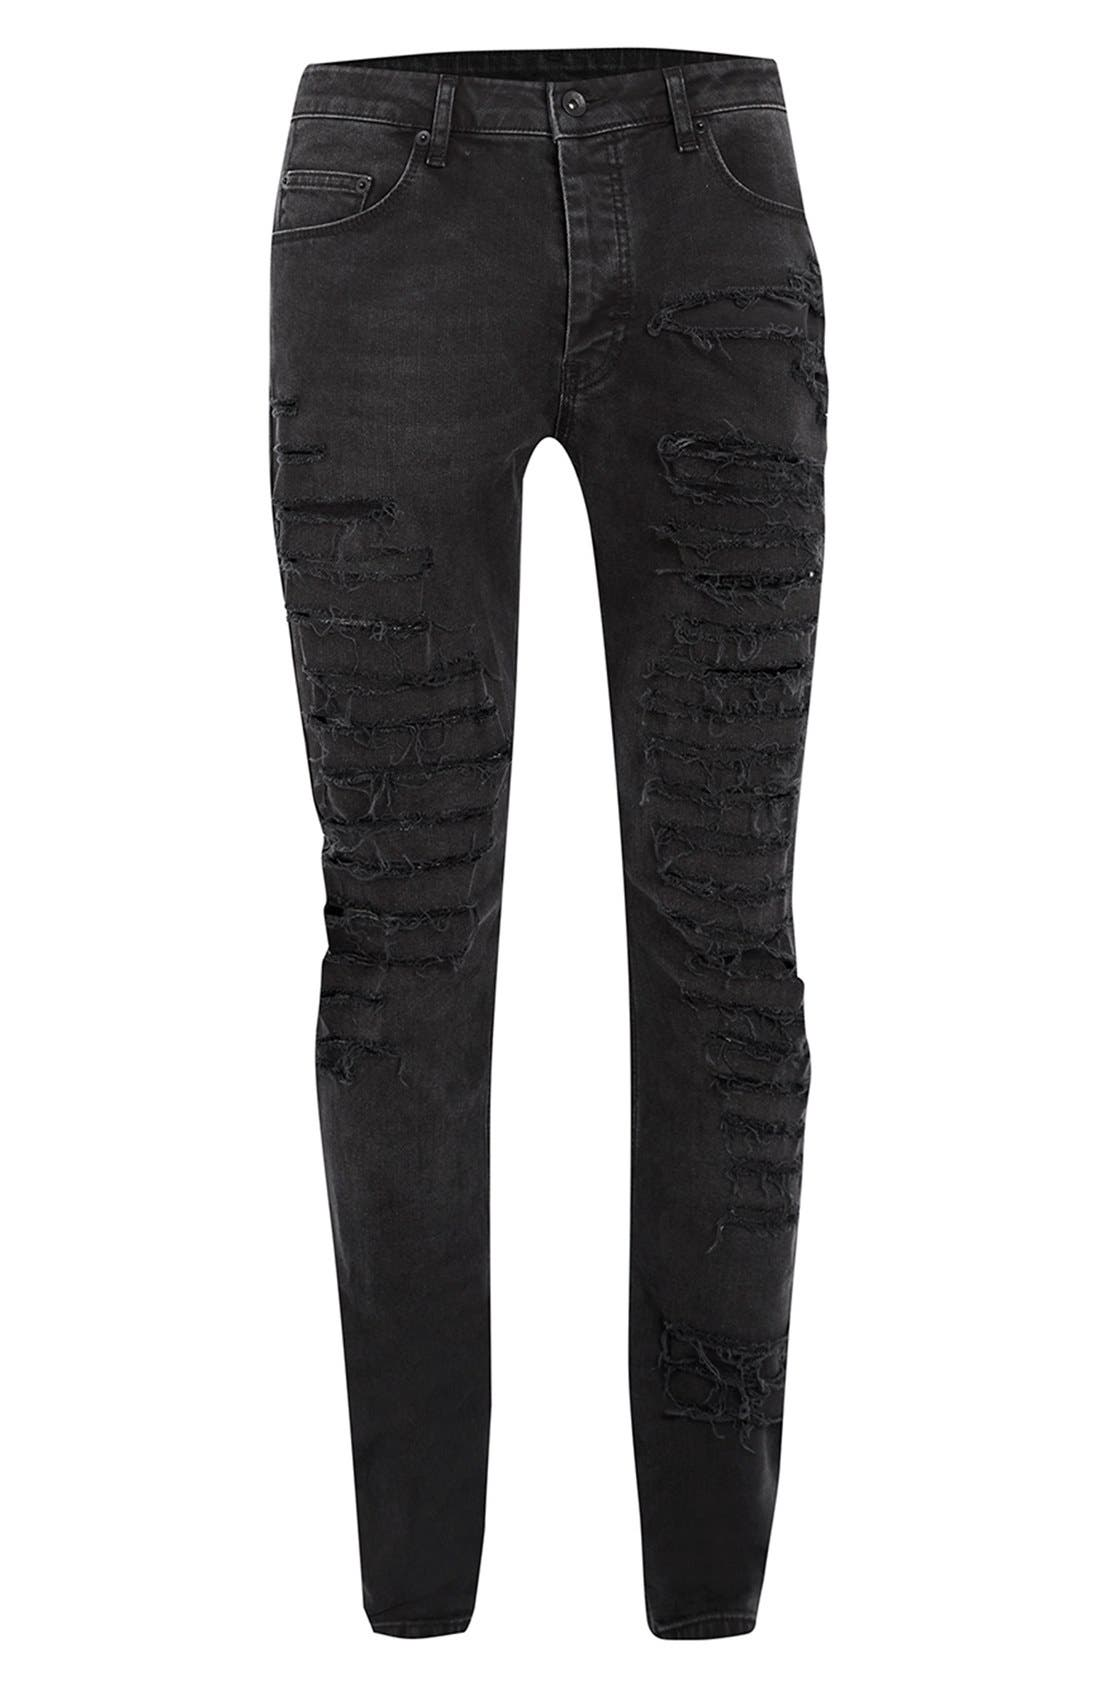 'AAA Collection' Shredded Stretch Skinny Fit Jeans,                             Alternate thumbnail 5, color,                             001